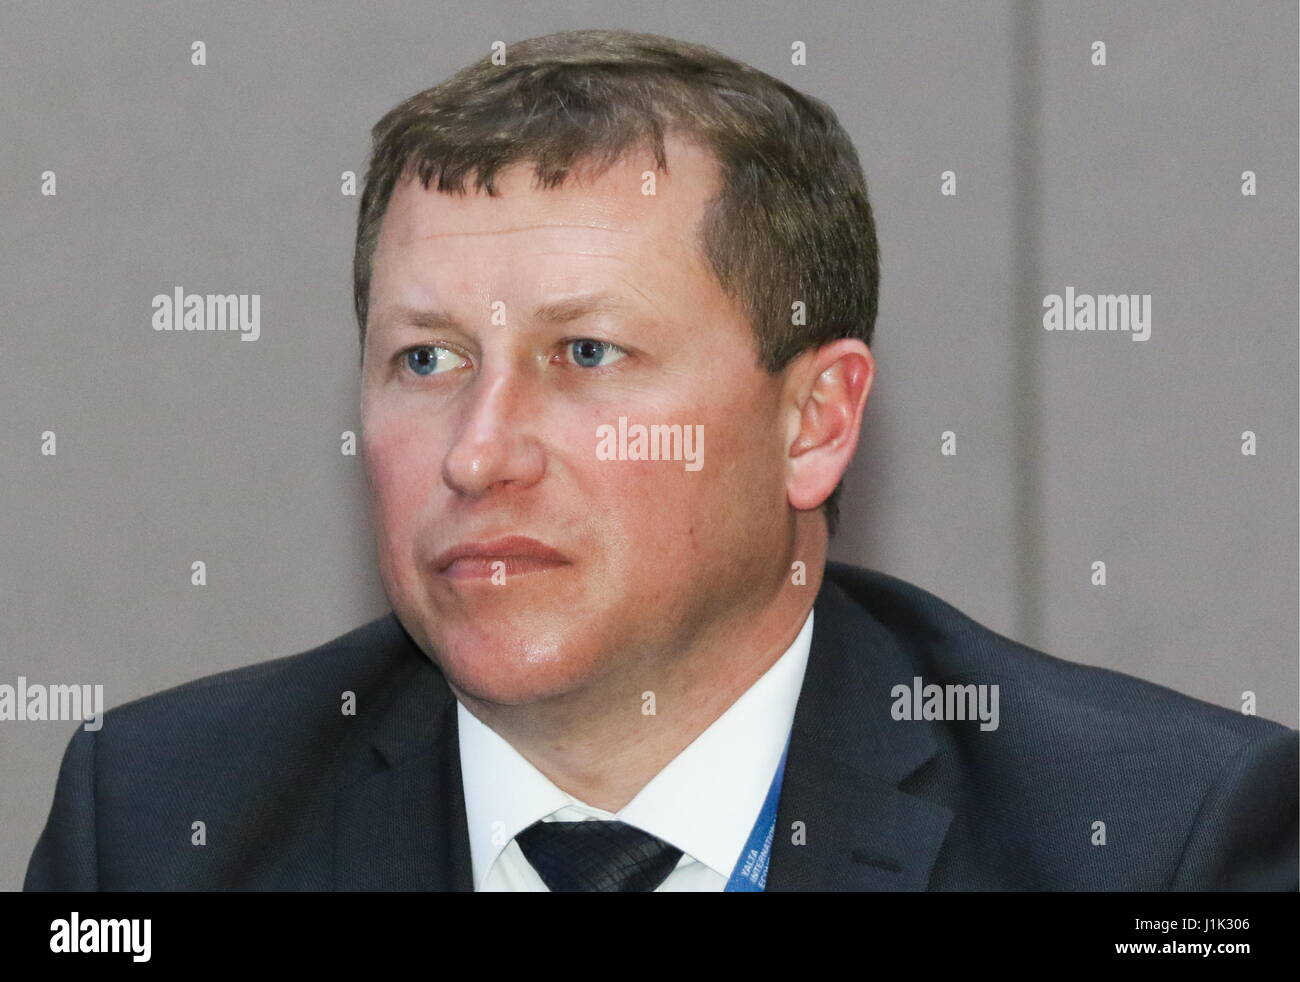 YALTA, CRIMEA, RUSSIA – APRIL 20, 2017: Simferopol Airport CEO Yevgeny Plaksin looks on at a panel session titled - Stock Image